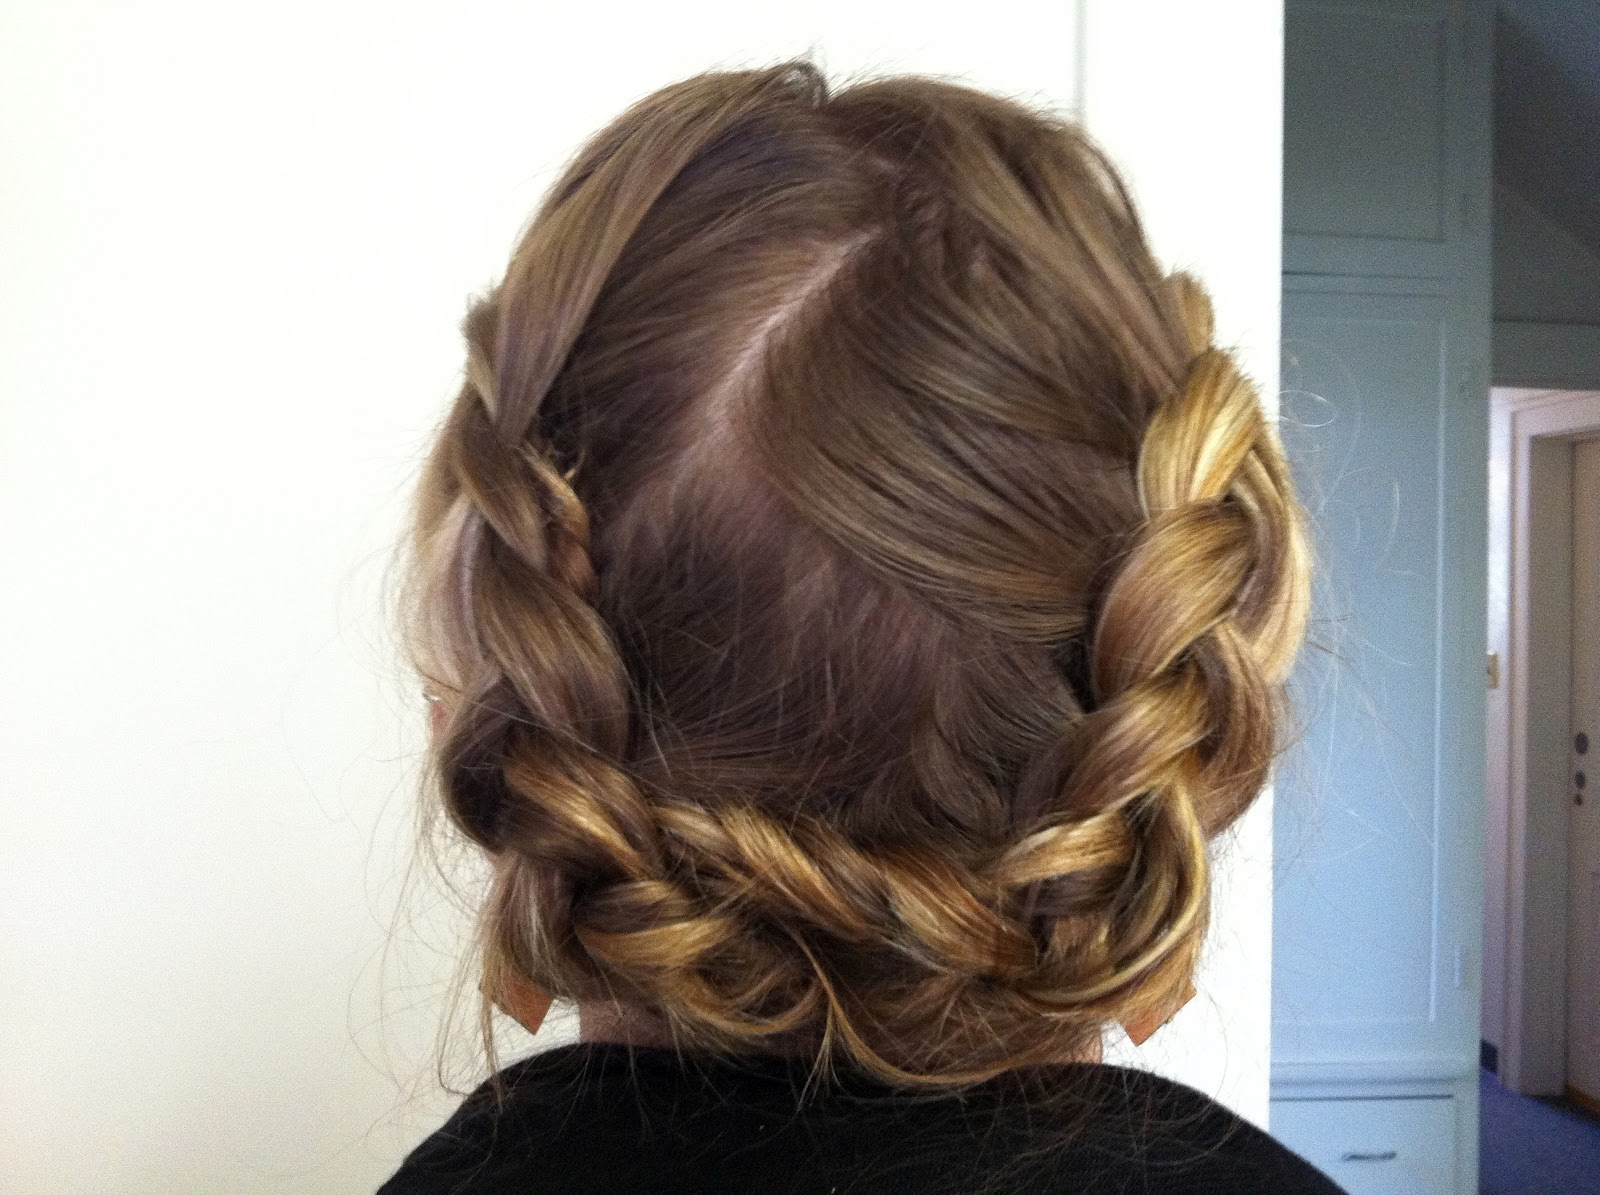 Hairstyles Halo : Bye Bye Beehive ? A Hairstyle Blog: Reverse Halo Braid